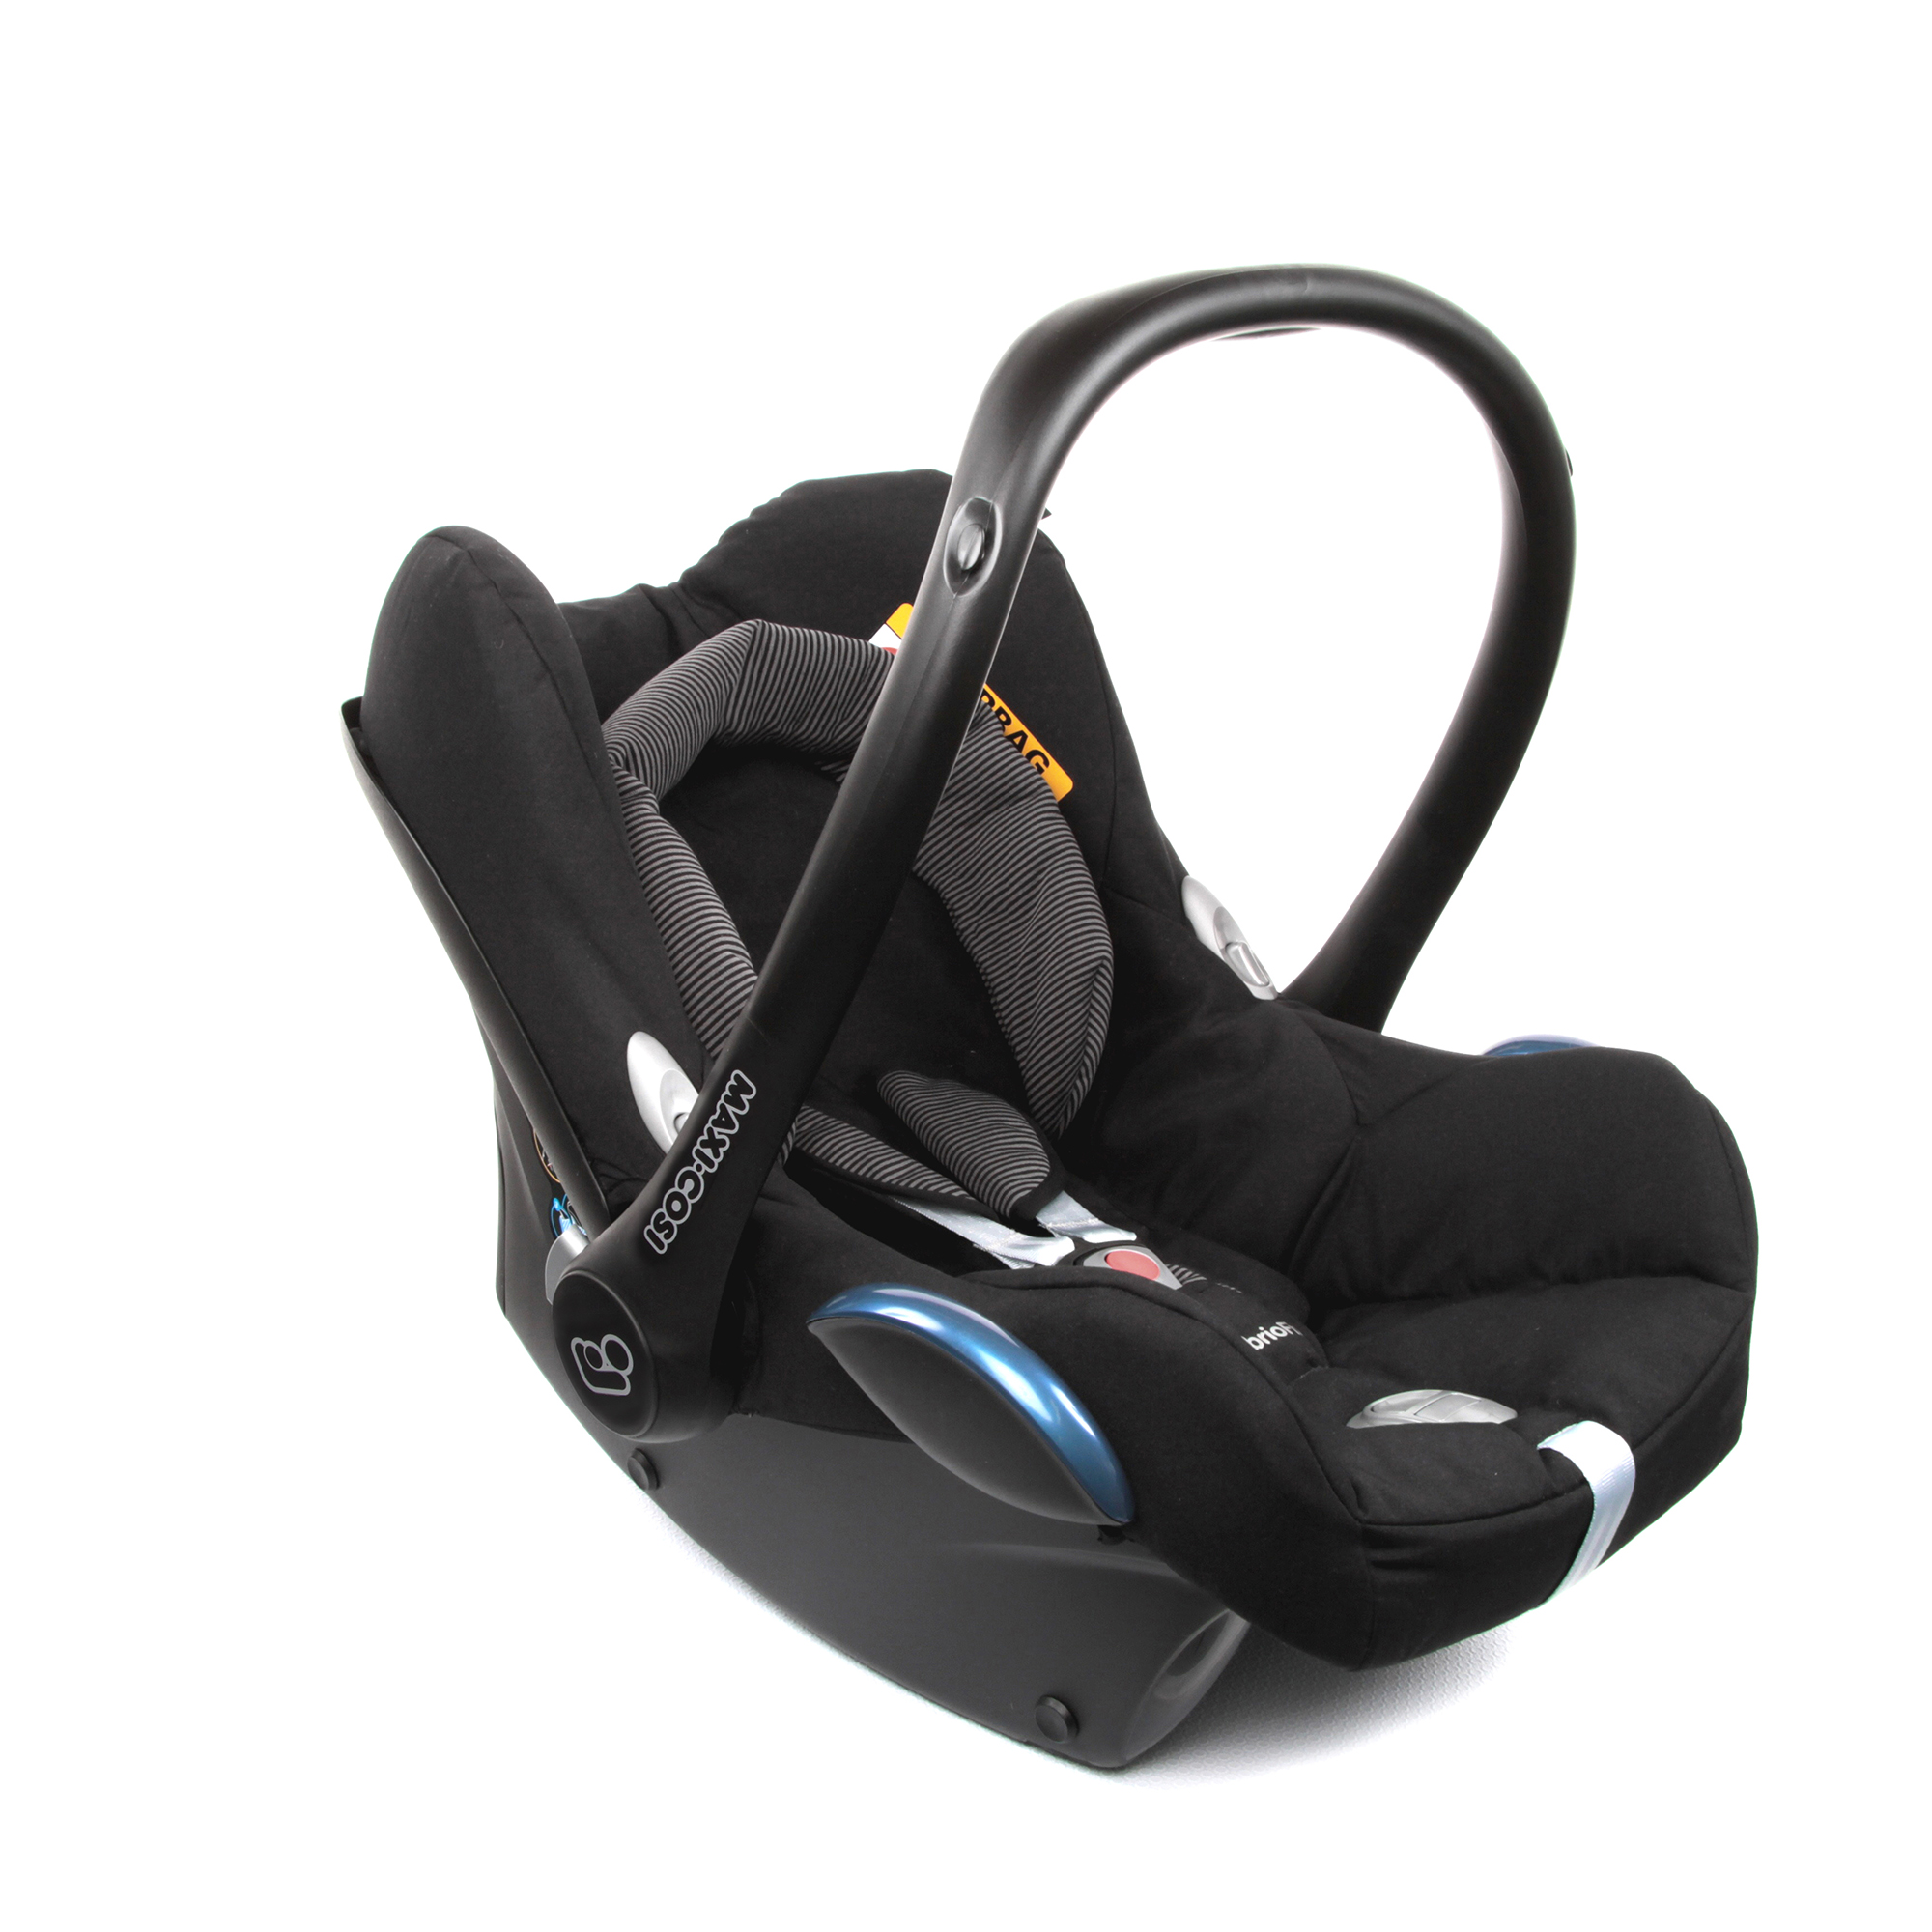 maxi cosi infant car seat cabriofix 2017 black raven buy. Black Bedroom Furniture Sets. Home Design Ideas